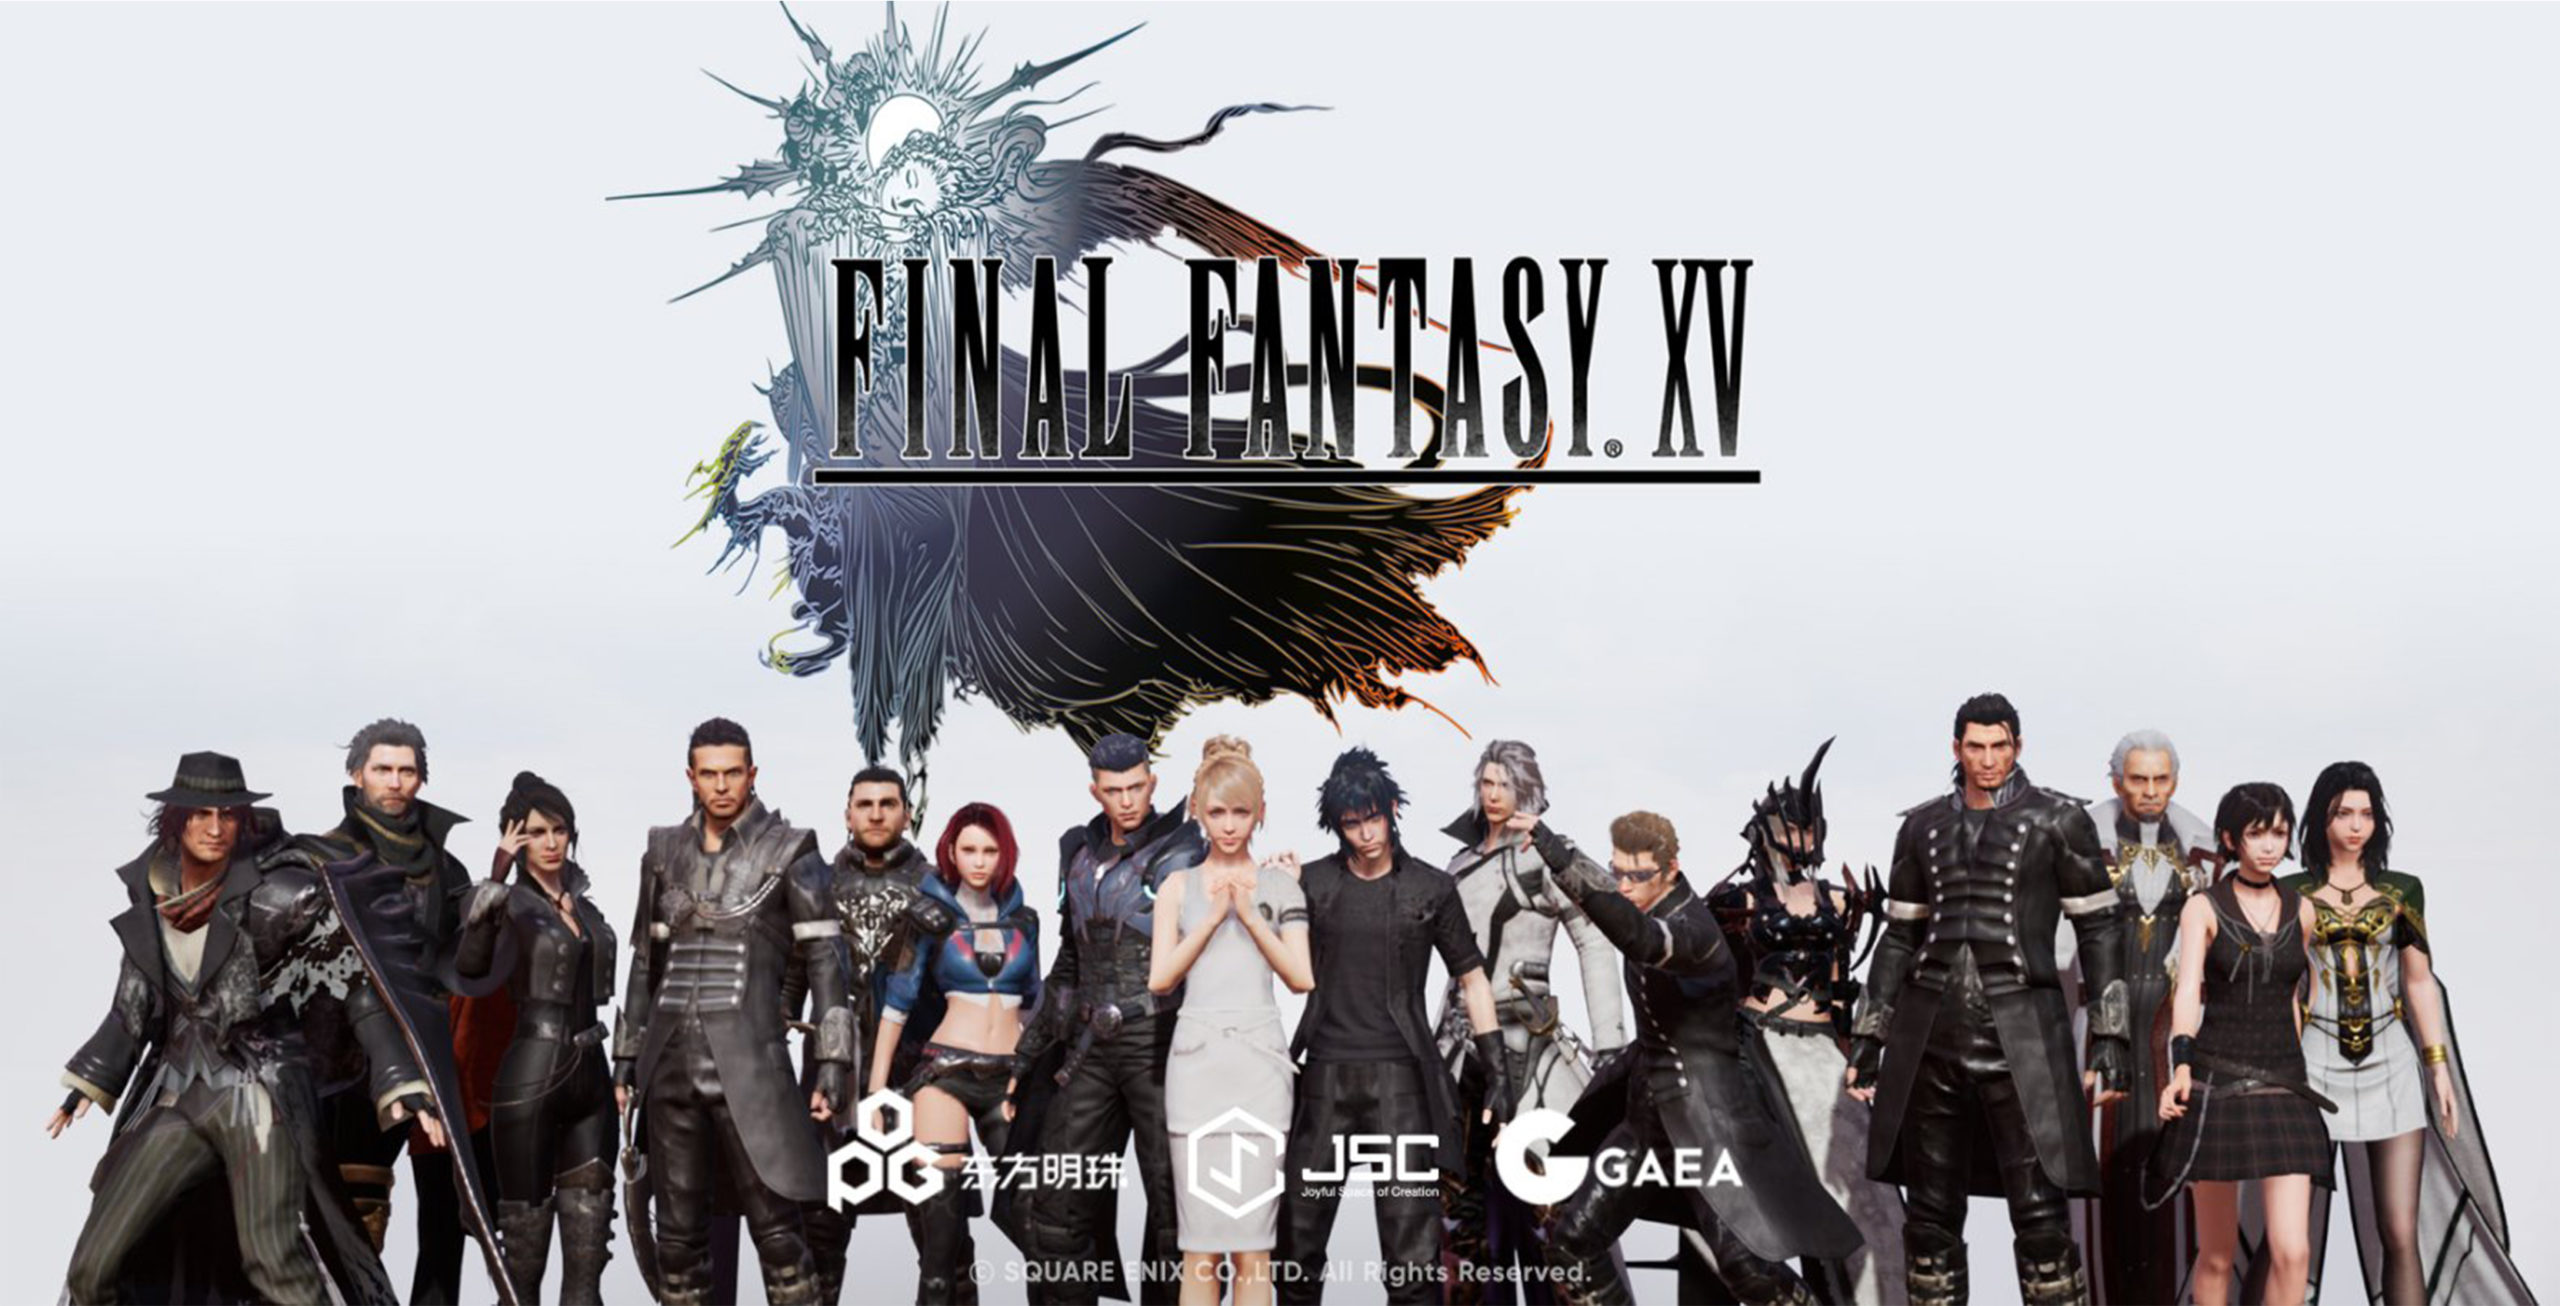 Square Enix is creating a Final Fantasy XV mobile MMORPG